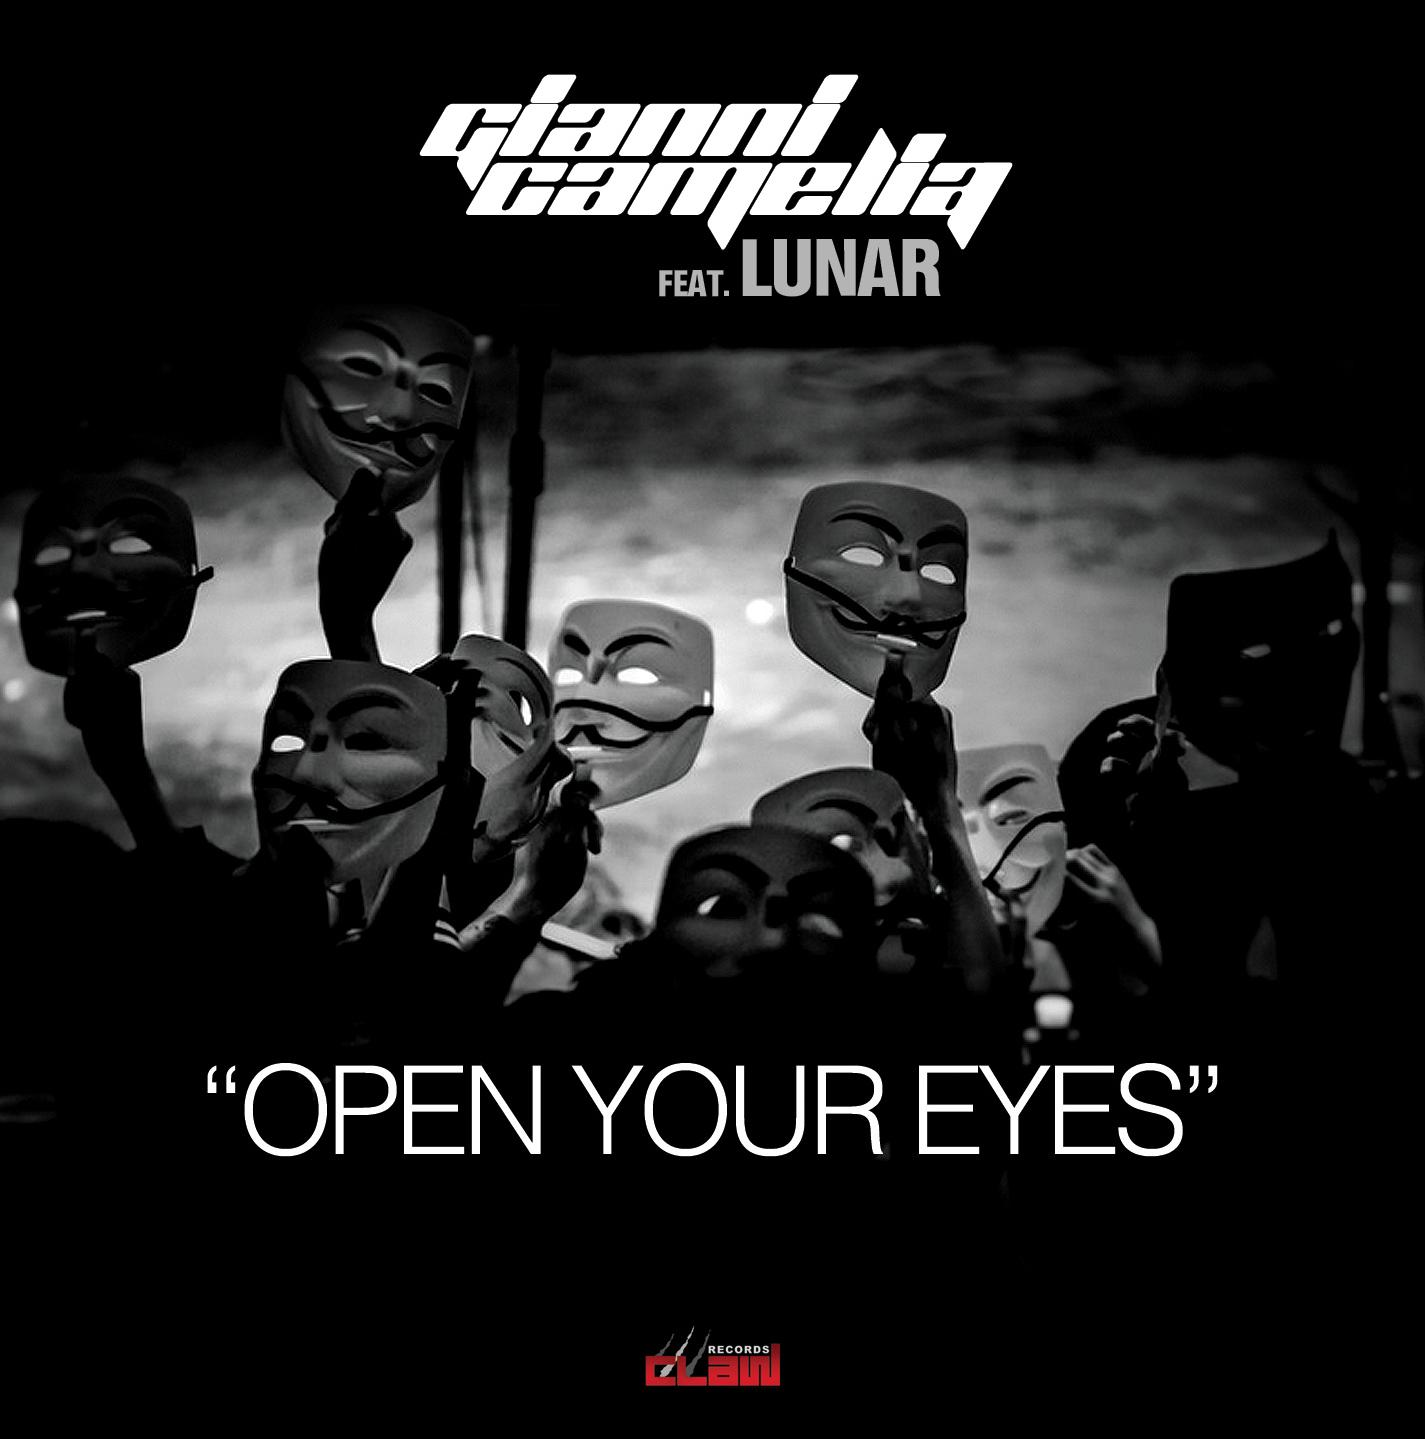 Gianni Camelia Ft Lunar Open Your Eyes Extended Mix